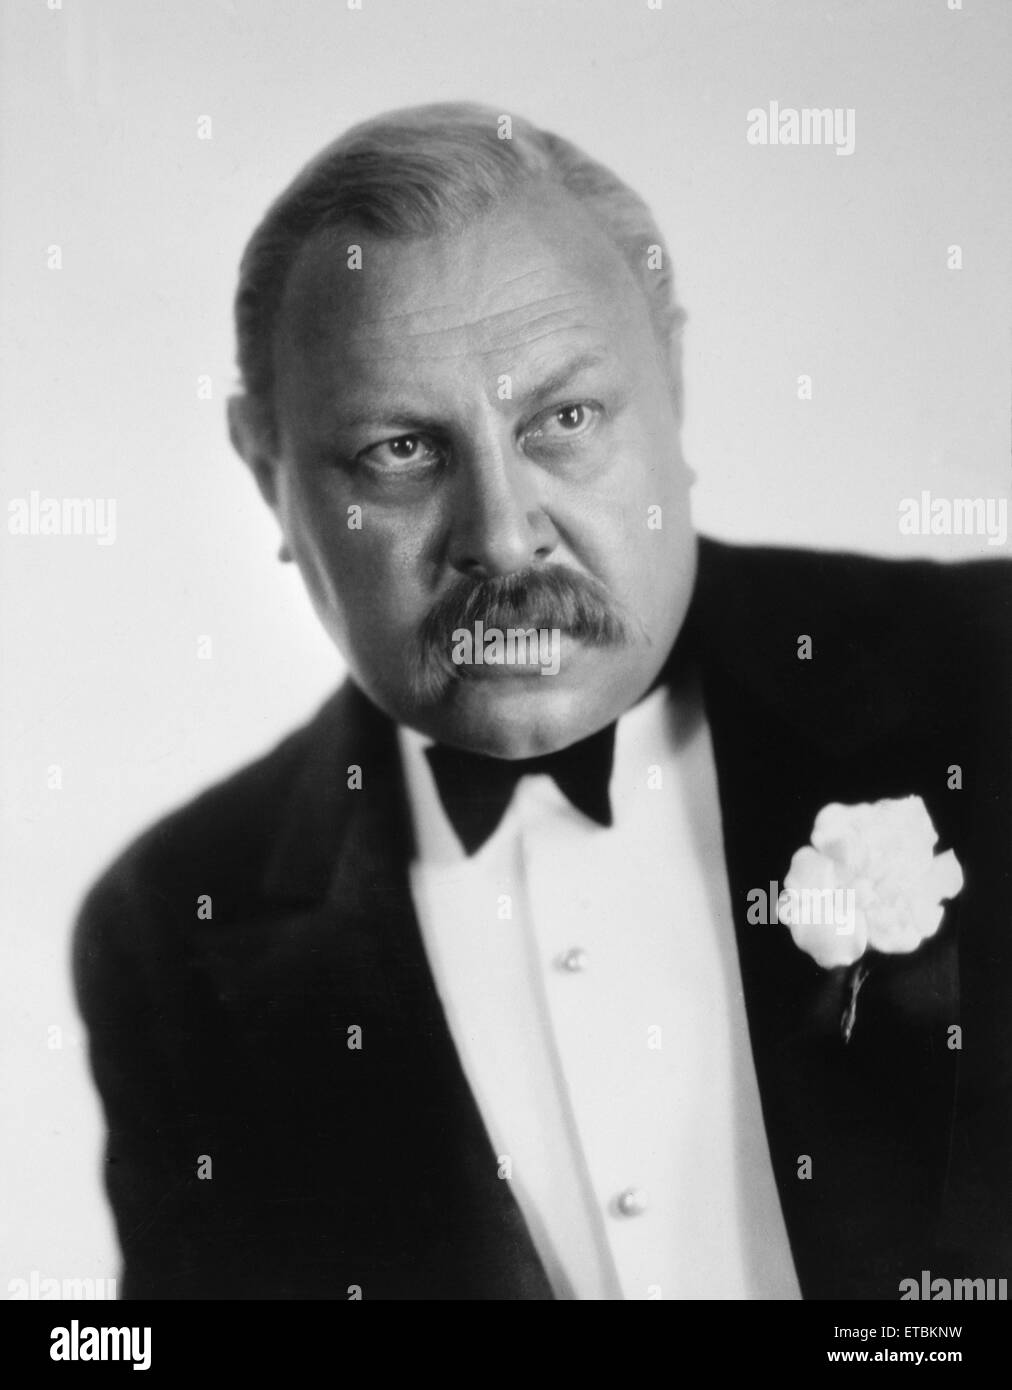 Actor Emil Jannings, Portrait, circa 1930 - Stock Image